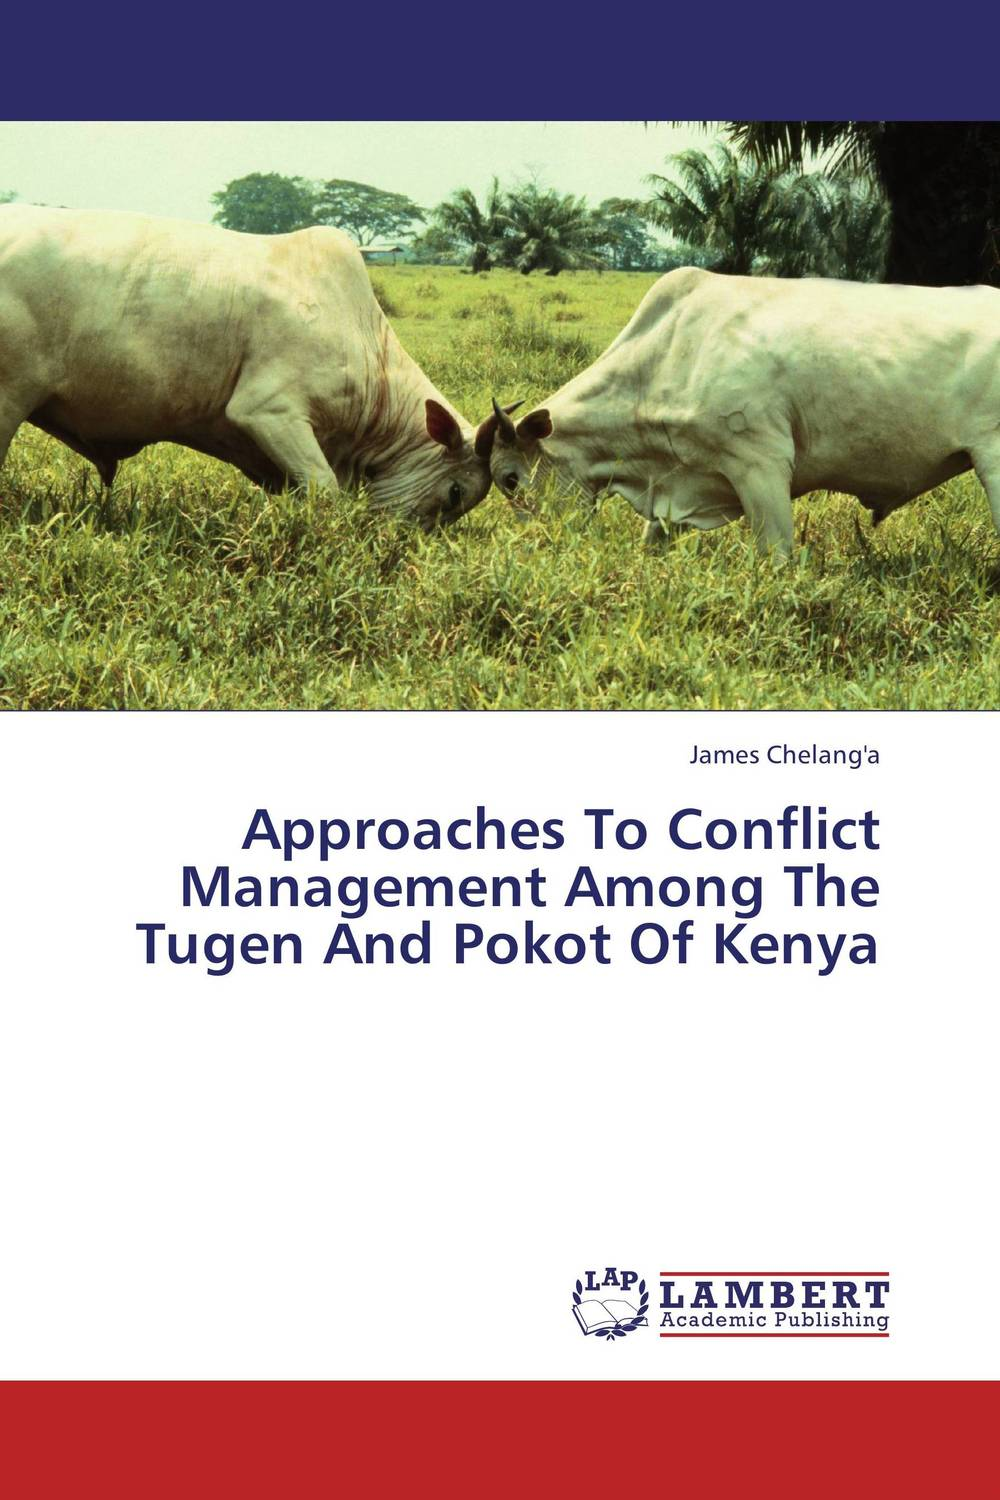 Approaches To Conflict Management Among The Tugen And Pokot Of Kenya nuhu saje adamu strategic role of interfaith diplomacy in conflicts management